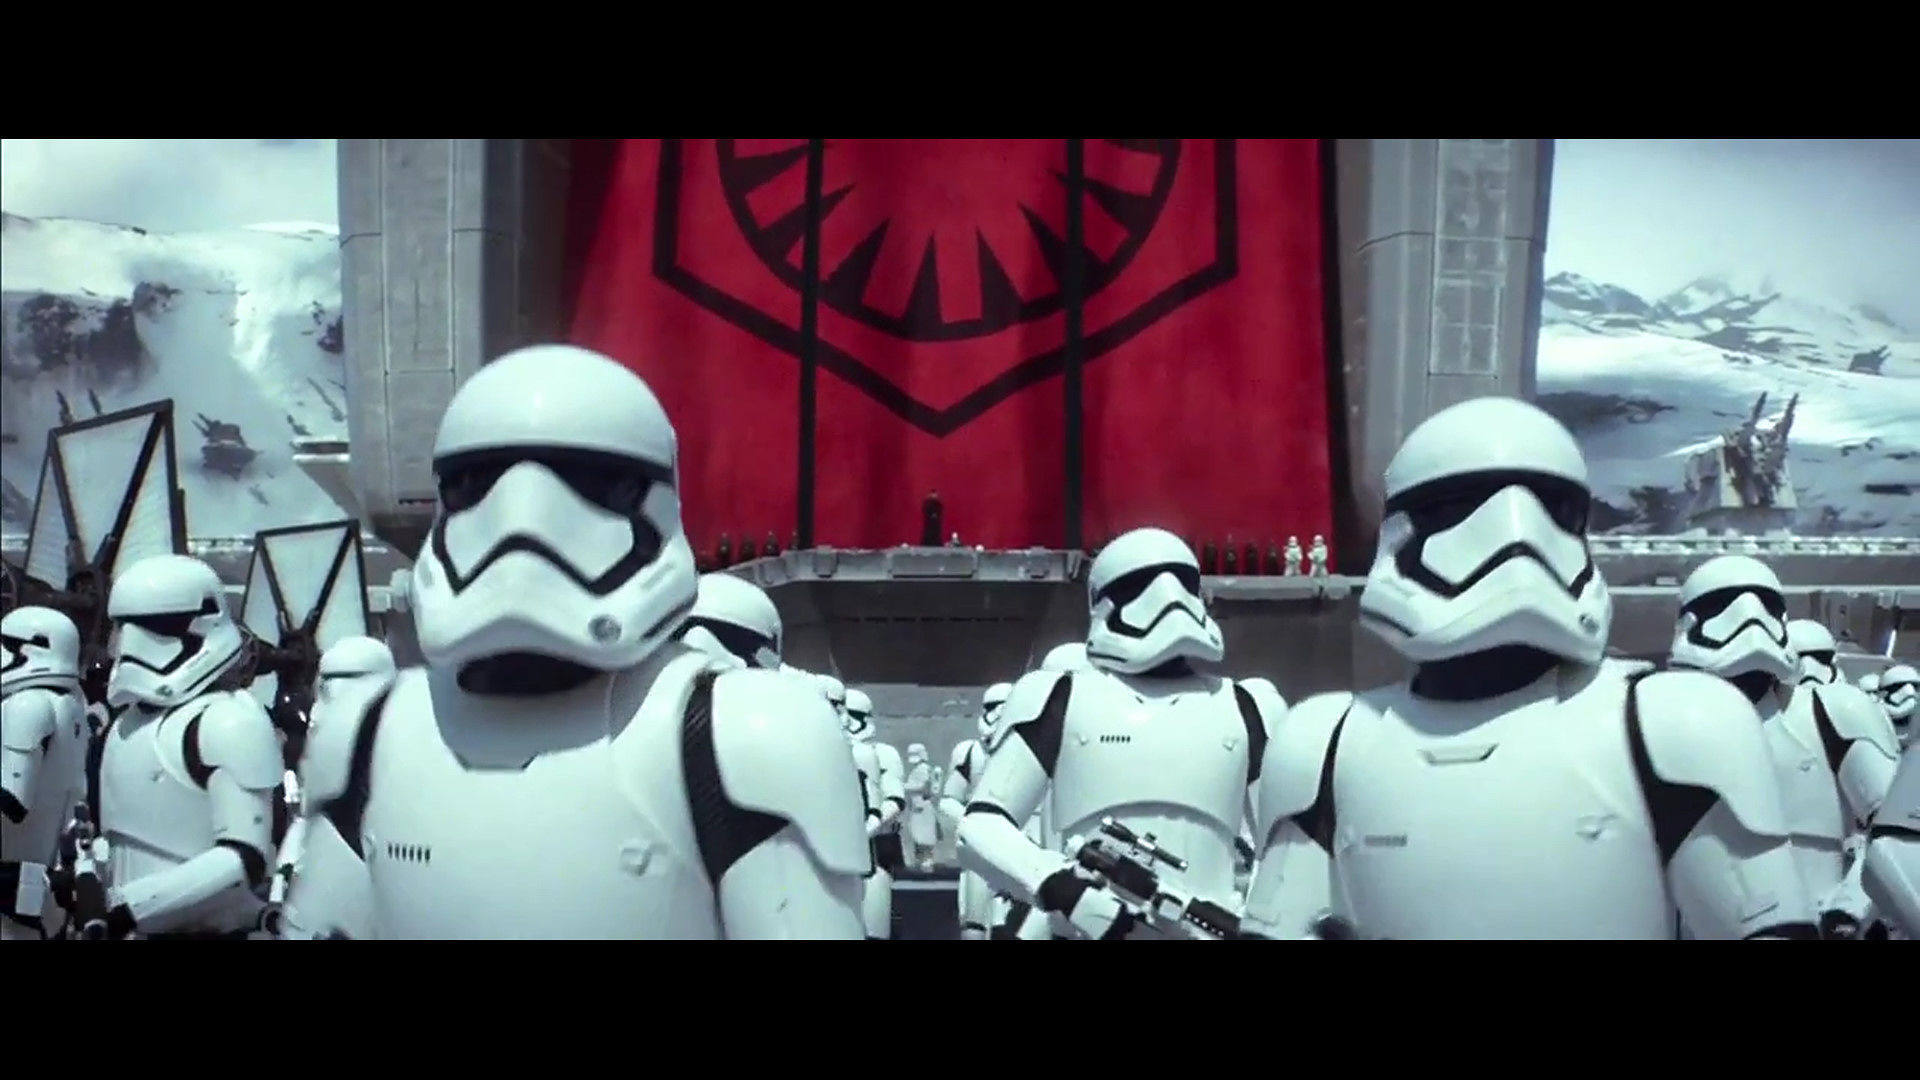 Who are the First Order?